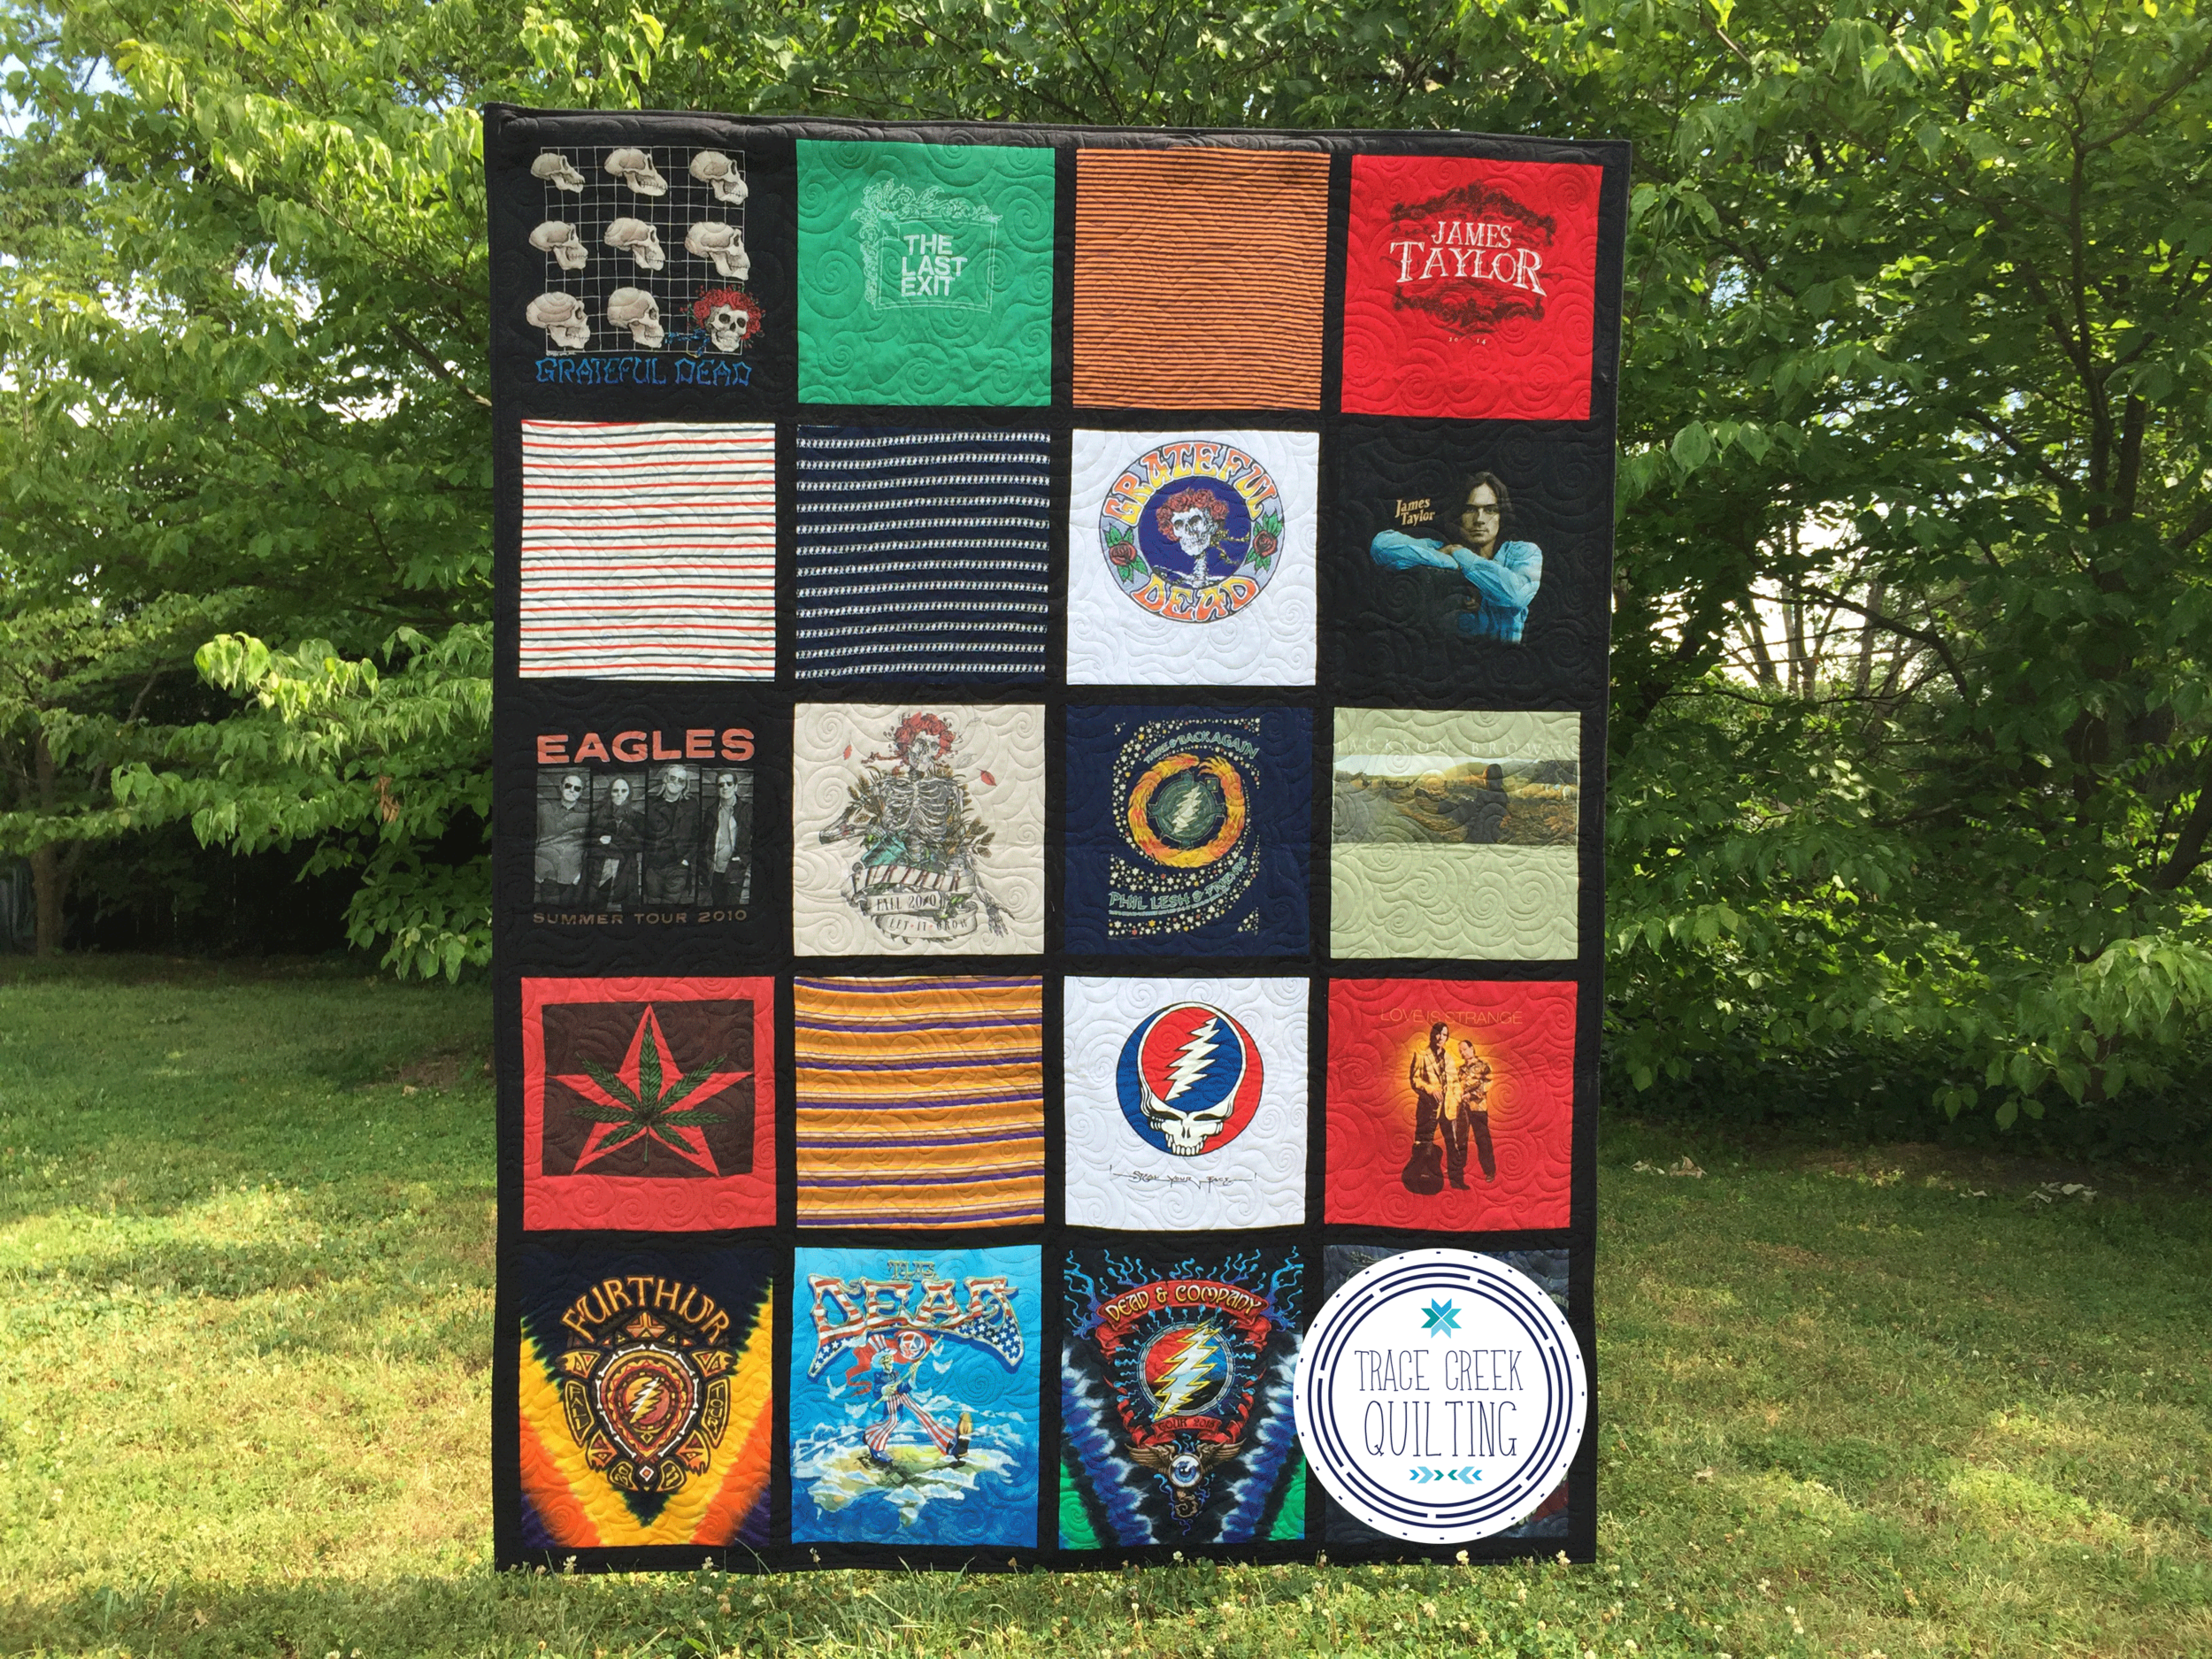 TShirt-Quilt-Trace-Creek-Quilting-053.png